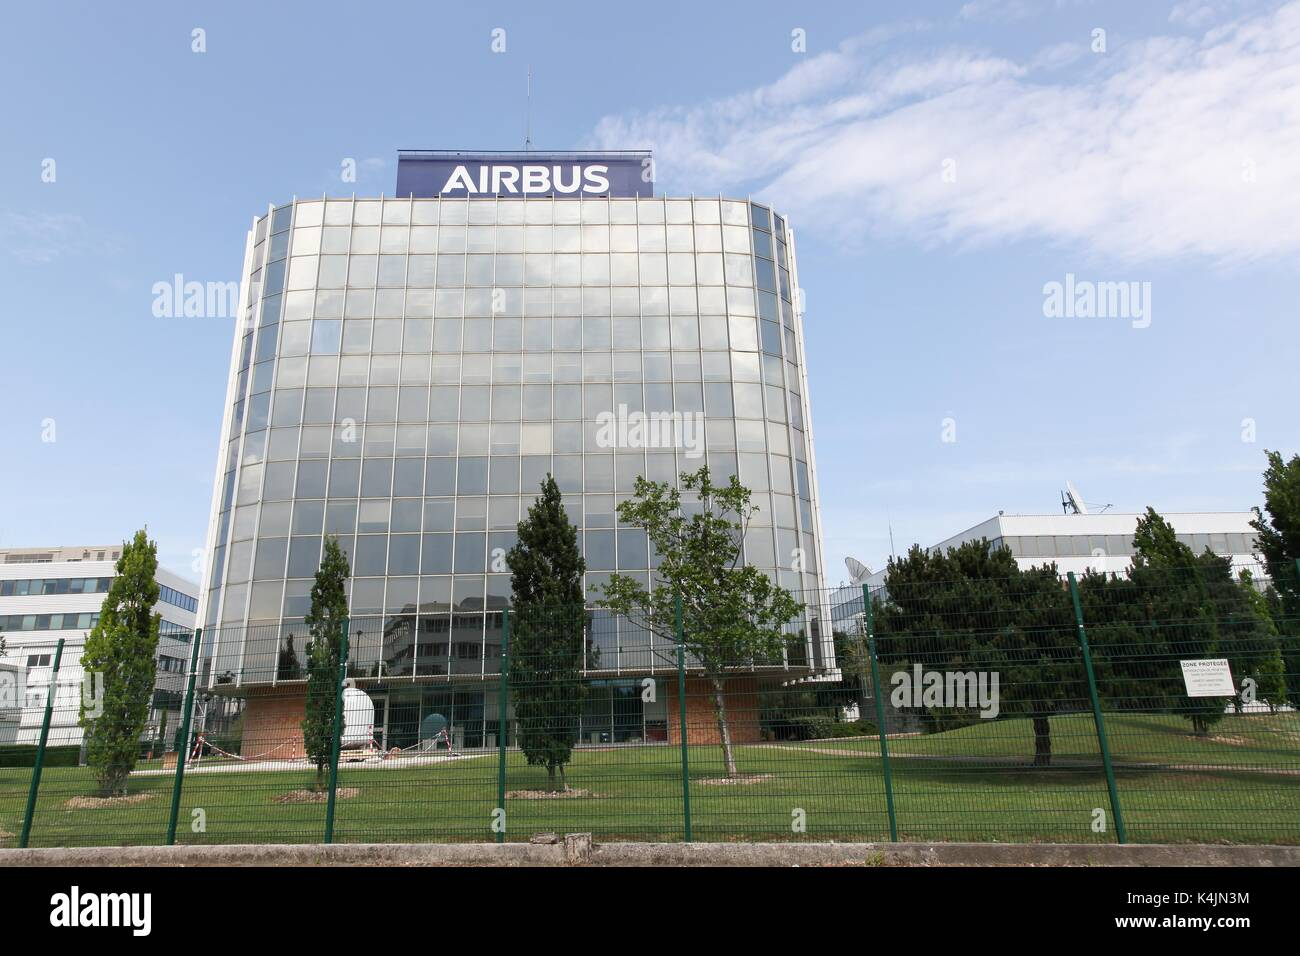 Toulouse,  France - June 2, 2017: Airbus building. Airbus is a division of the multinational Airbus SE that manufactures civil aircraft. - Stock Image